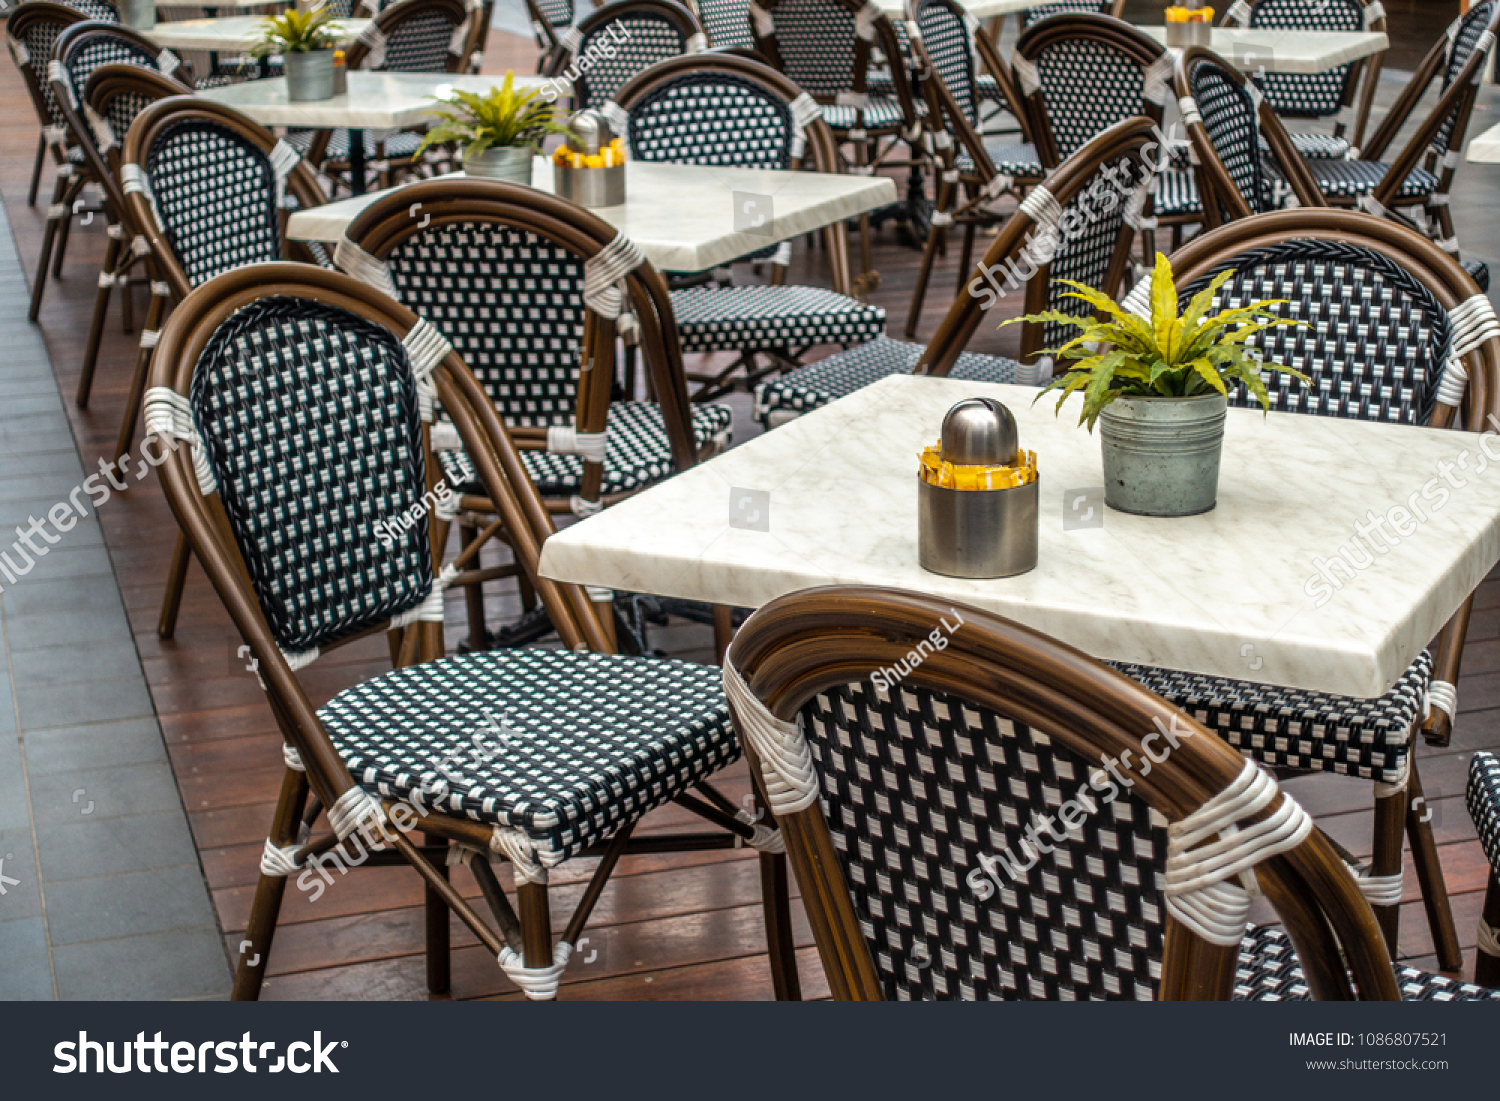 Restaurant table and chairs settings in outdoor dinning area elegant chair with stylish marble surface tabletop